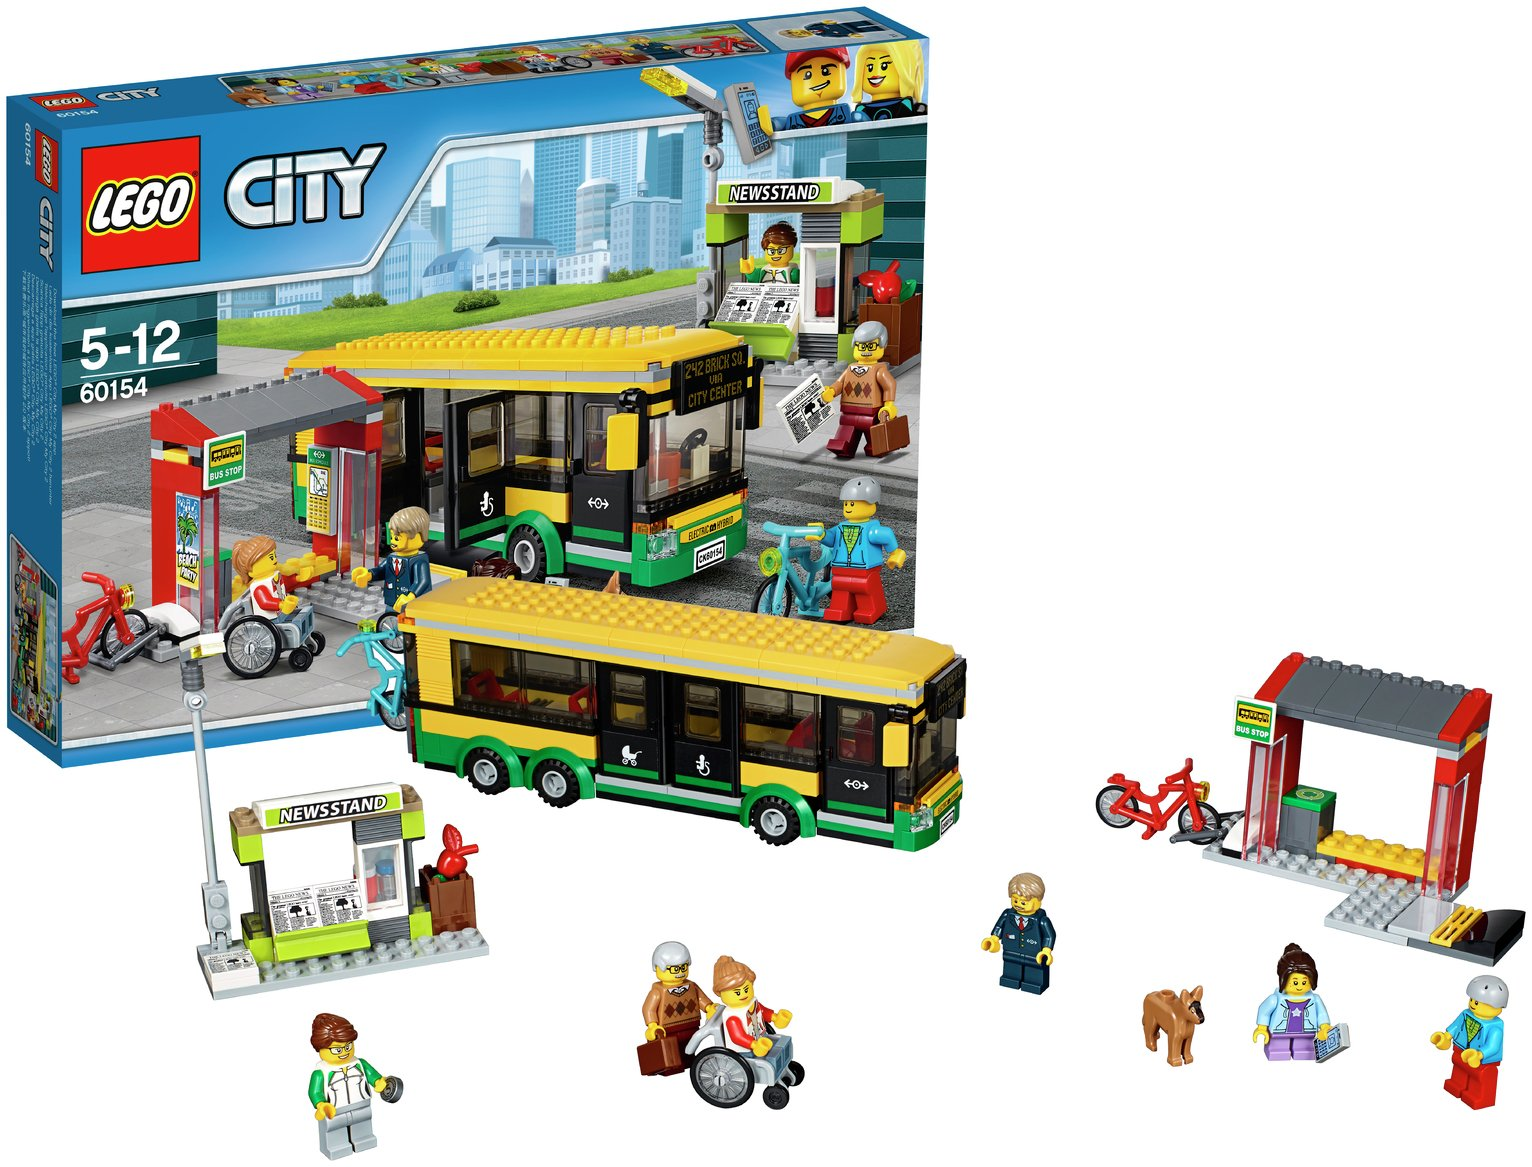 LEGO City Bus Station - 60154